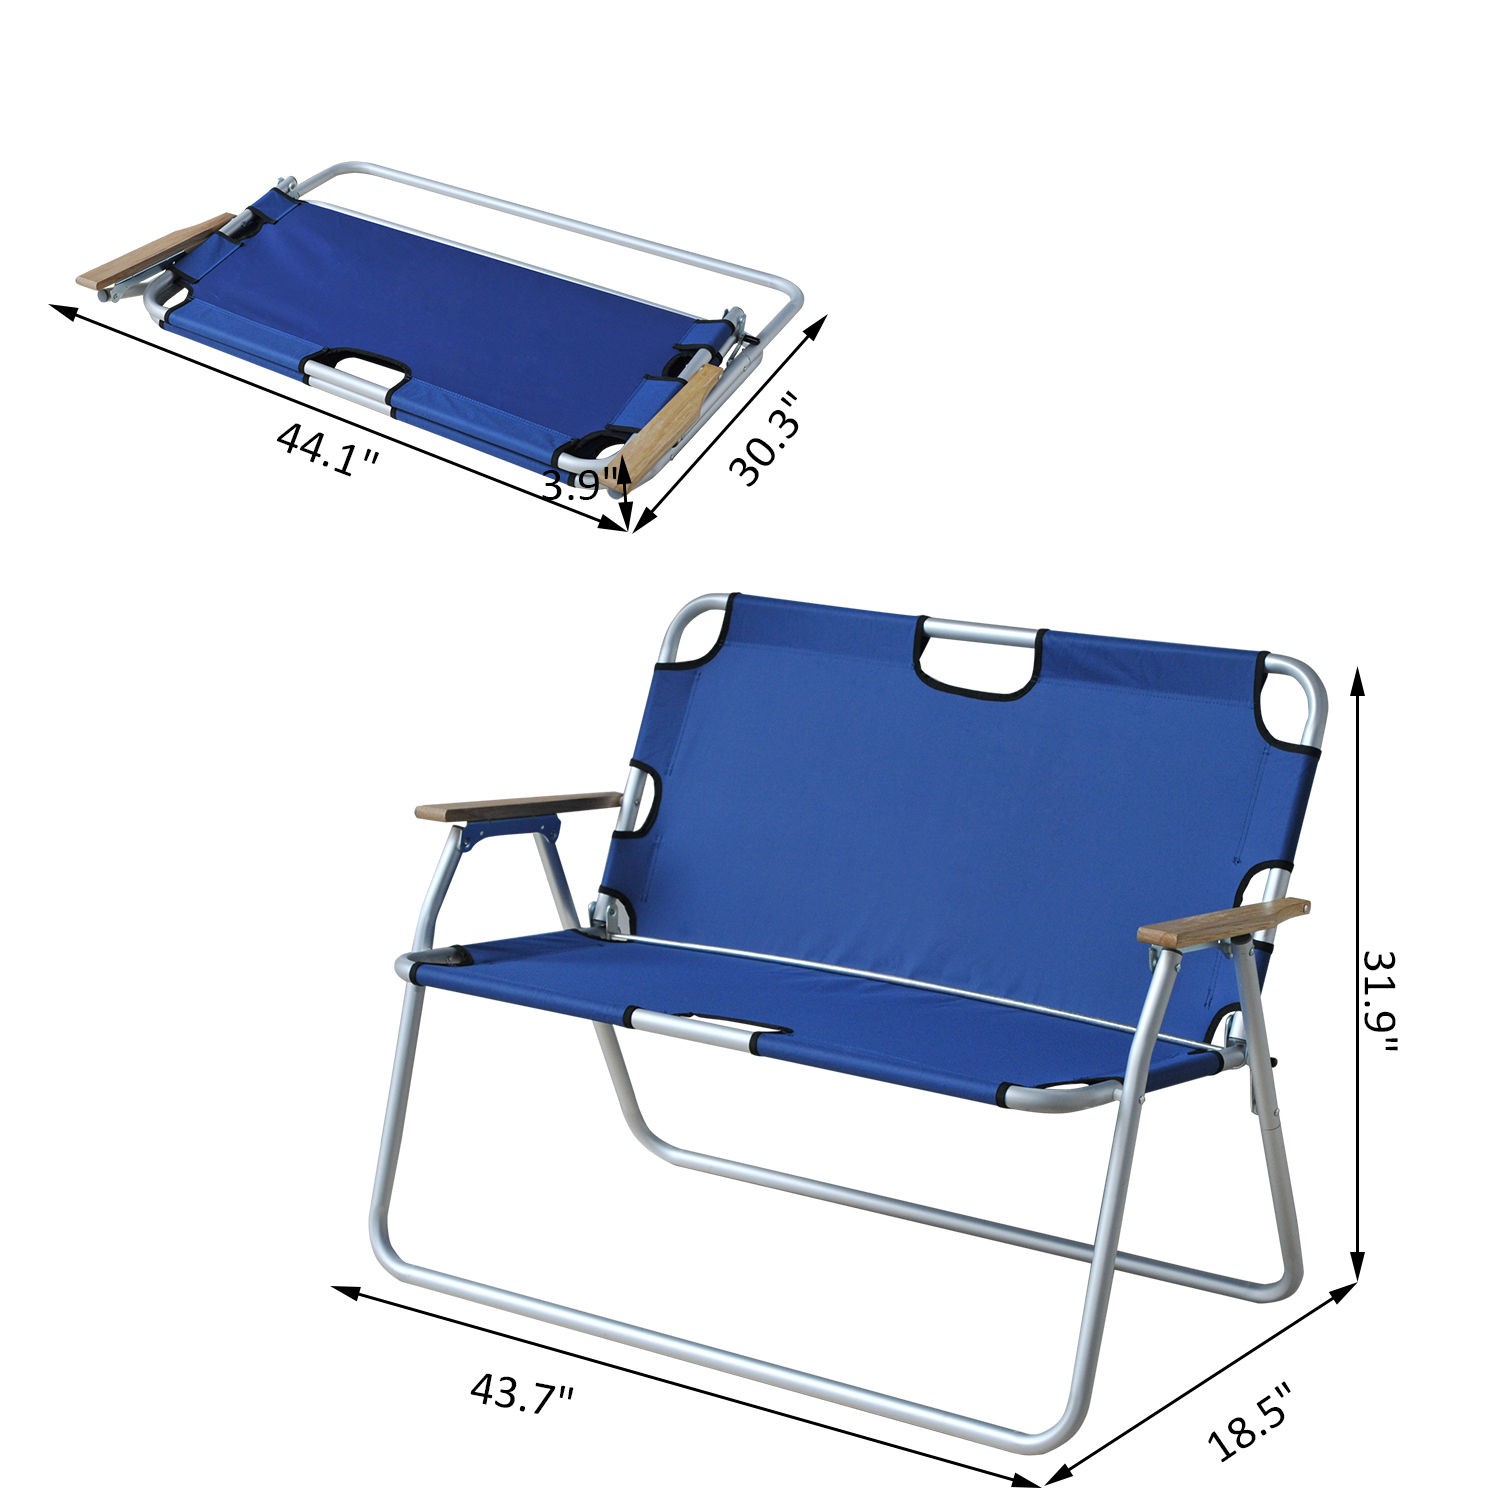 Beau Outdoor Lawn Chair 2 Person Seat Foldable Picnic